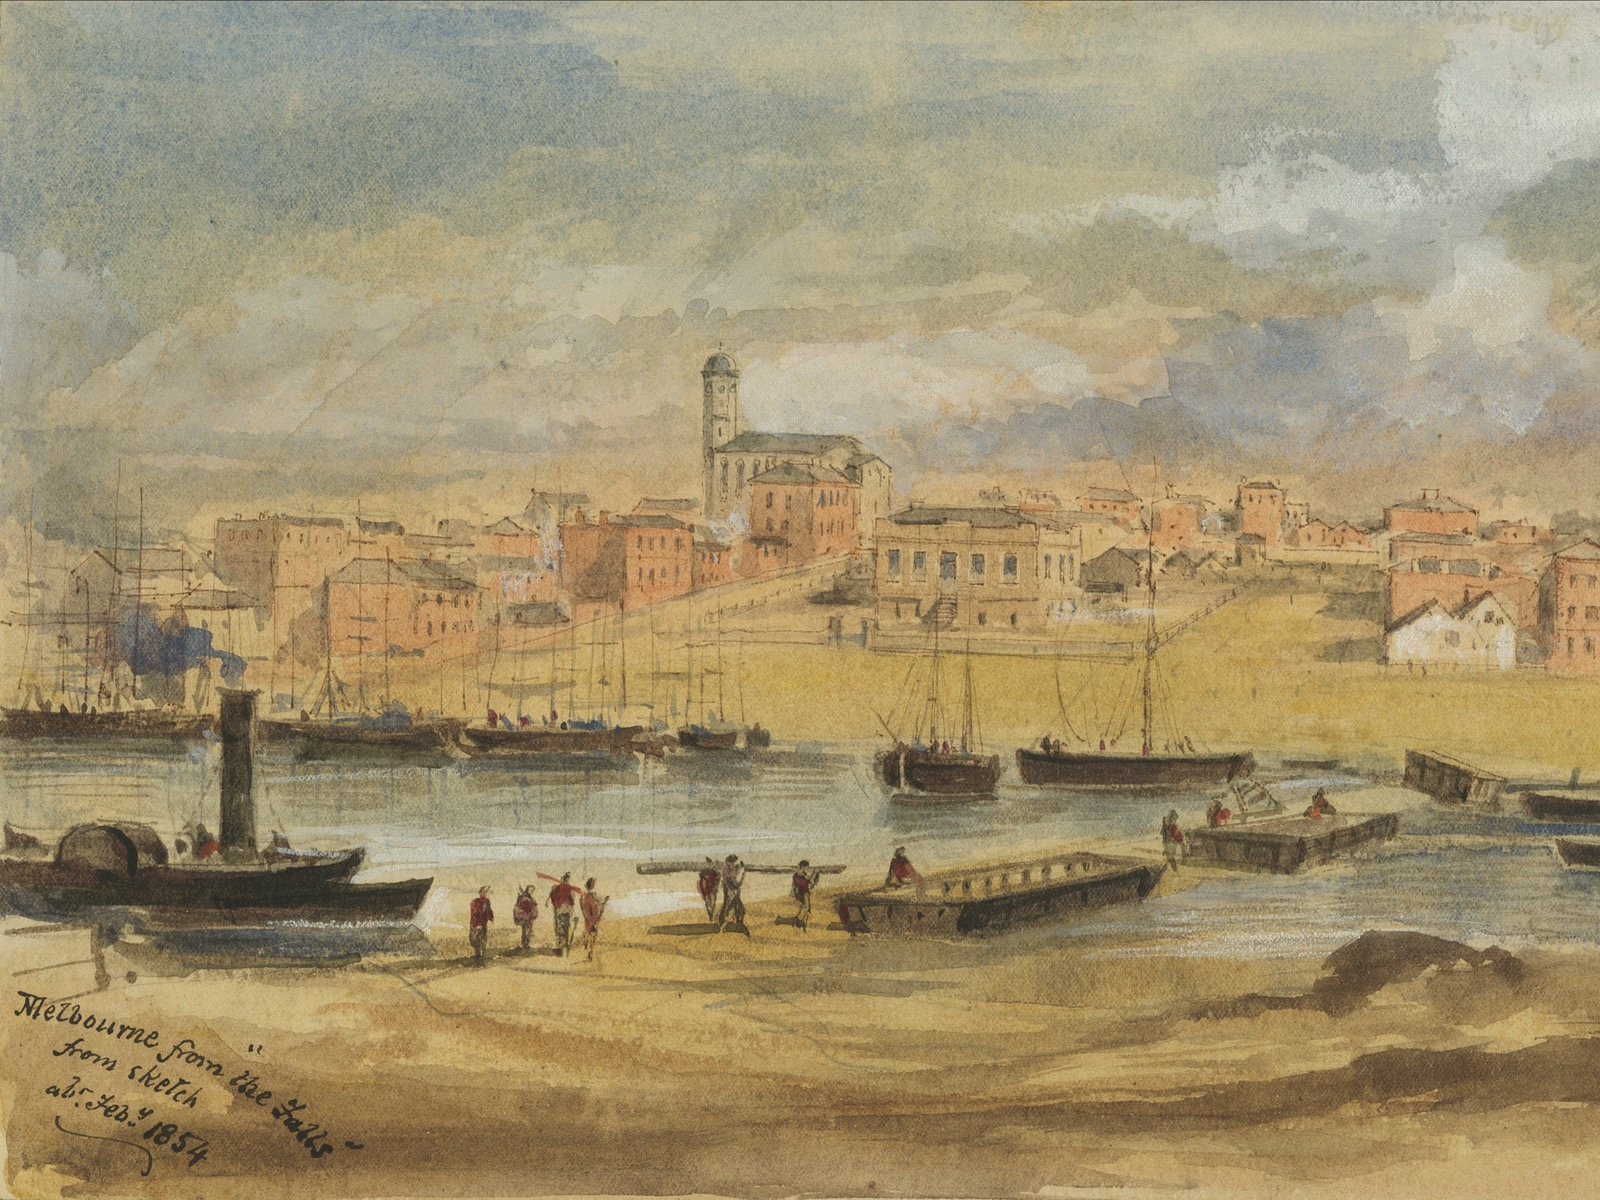 Image from 1854 showing the falls of Melbourne looking toward Williams street Customs House